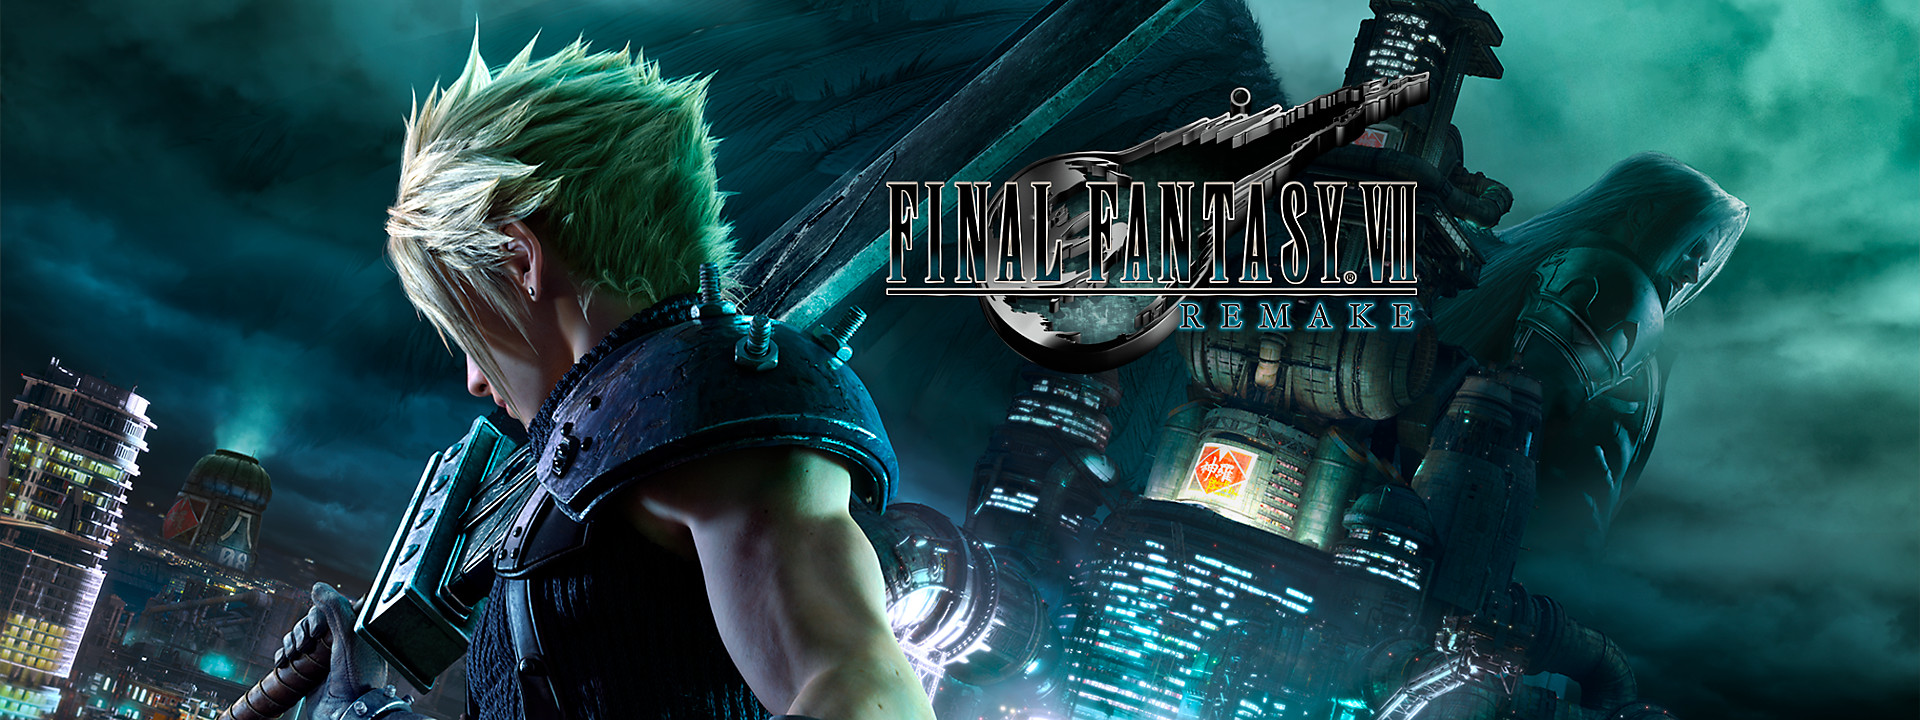 FINAL FANTASY VII REMAKE - Coming March 3, 2020